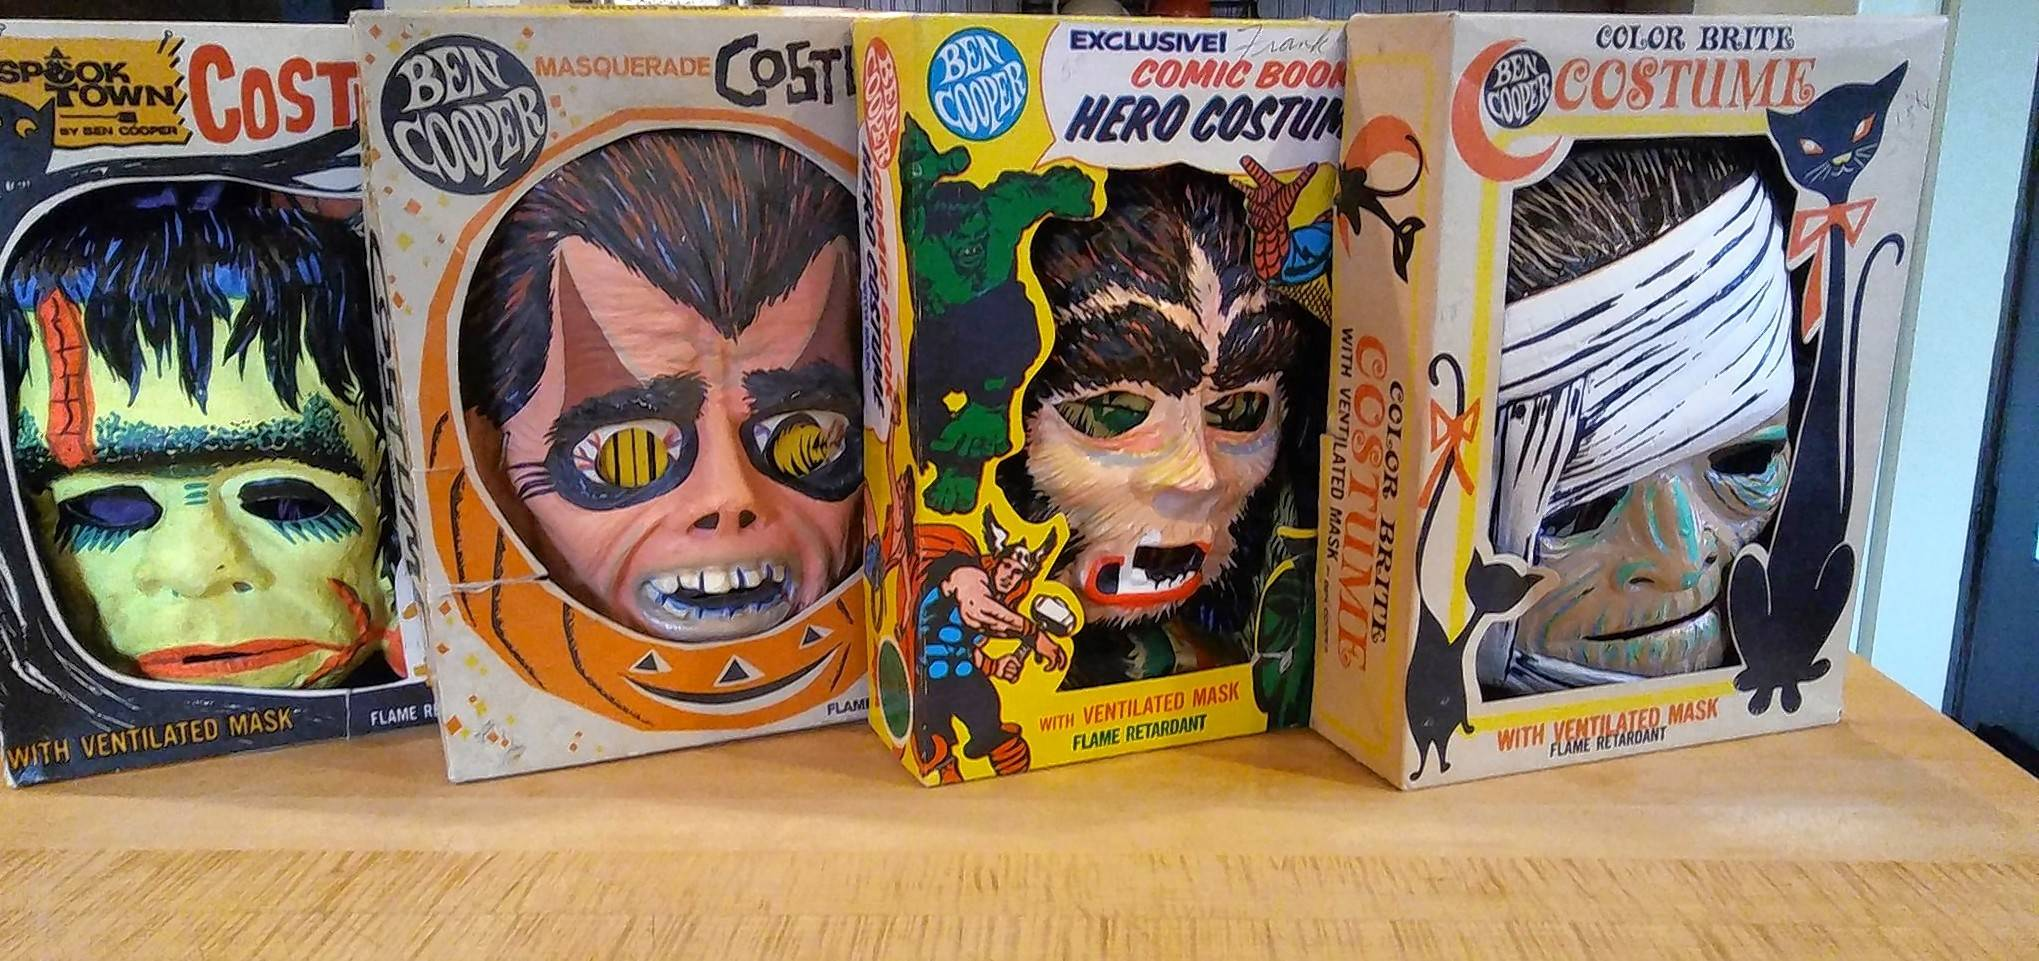 One of the largest vintage boxed dime-store Halloween costume collections in the Midwest & Local antiques dealer to sell large vintage boxed dime-store ...